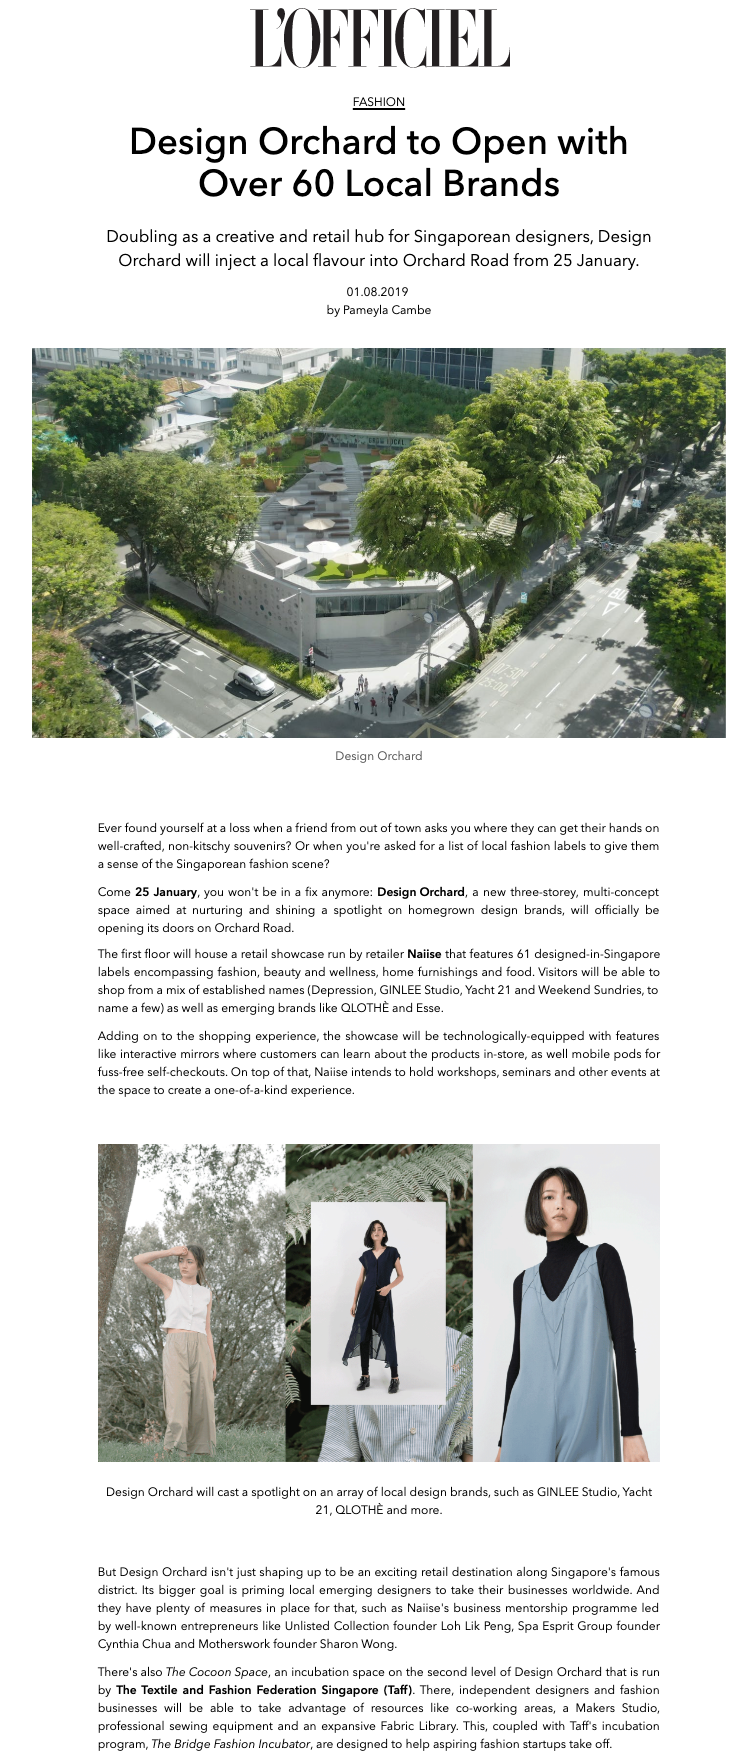 L'OFFICIEL: Design Orchard to Open with Over 60 Local Brands